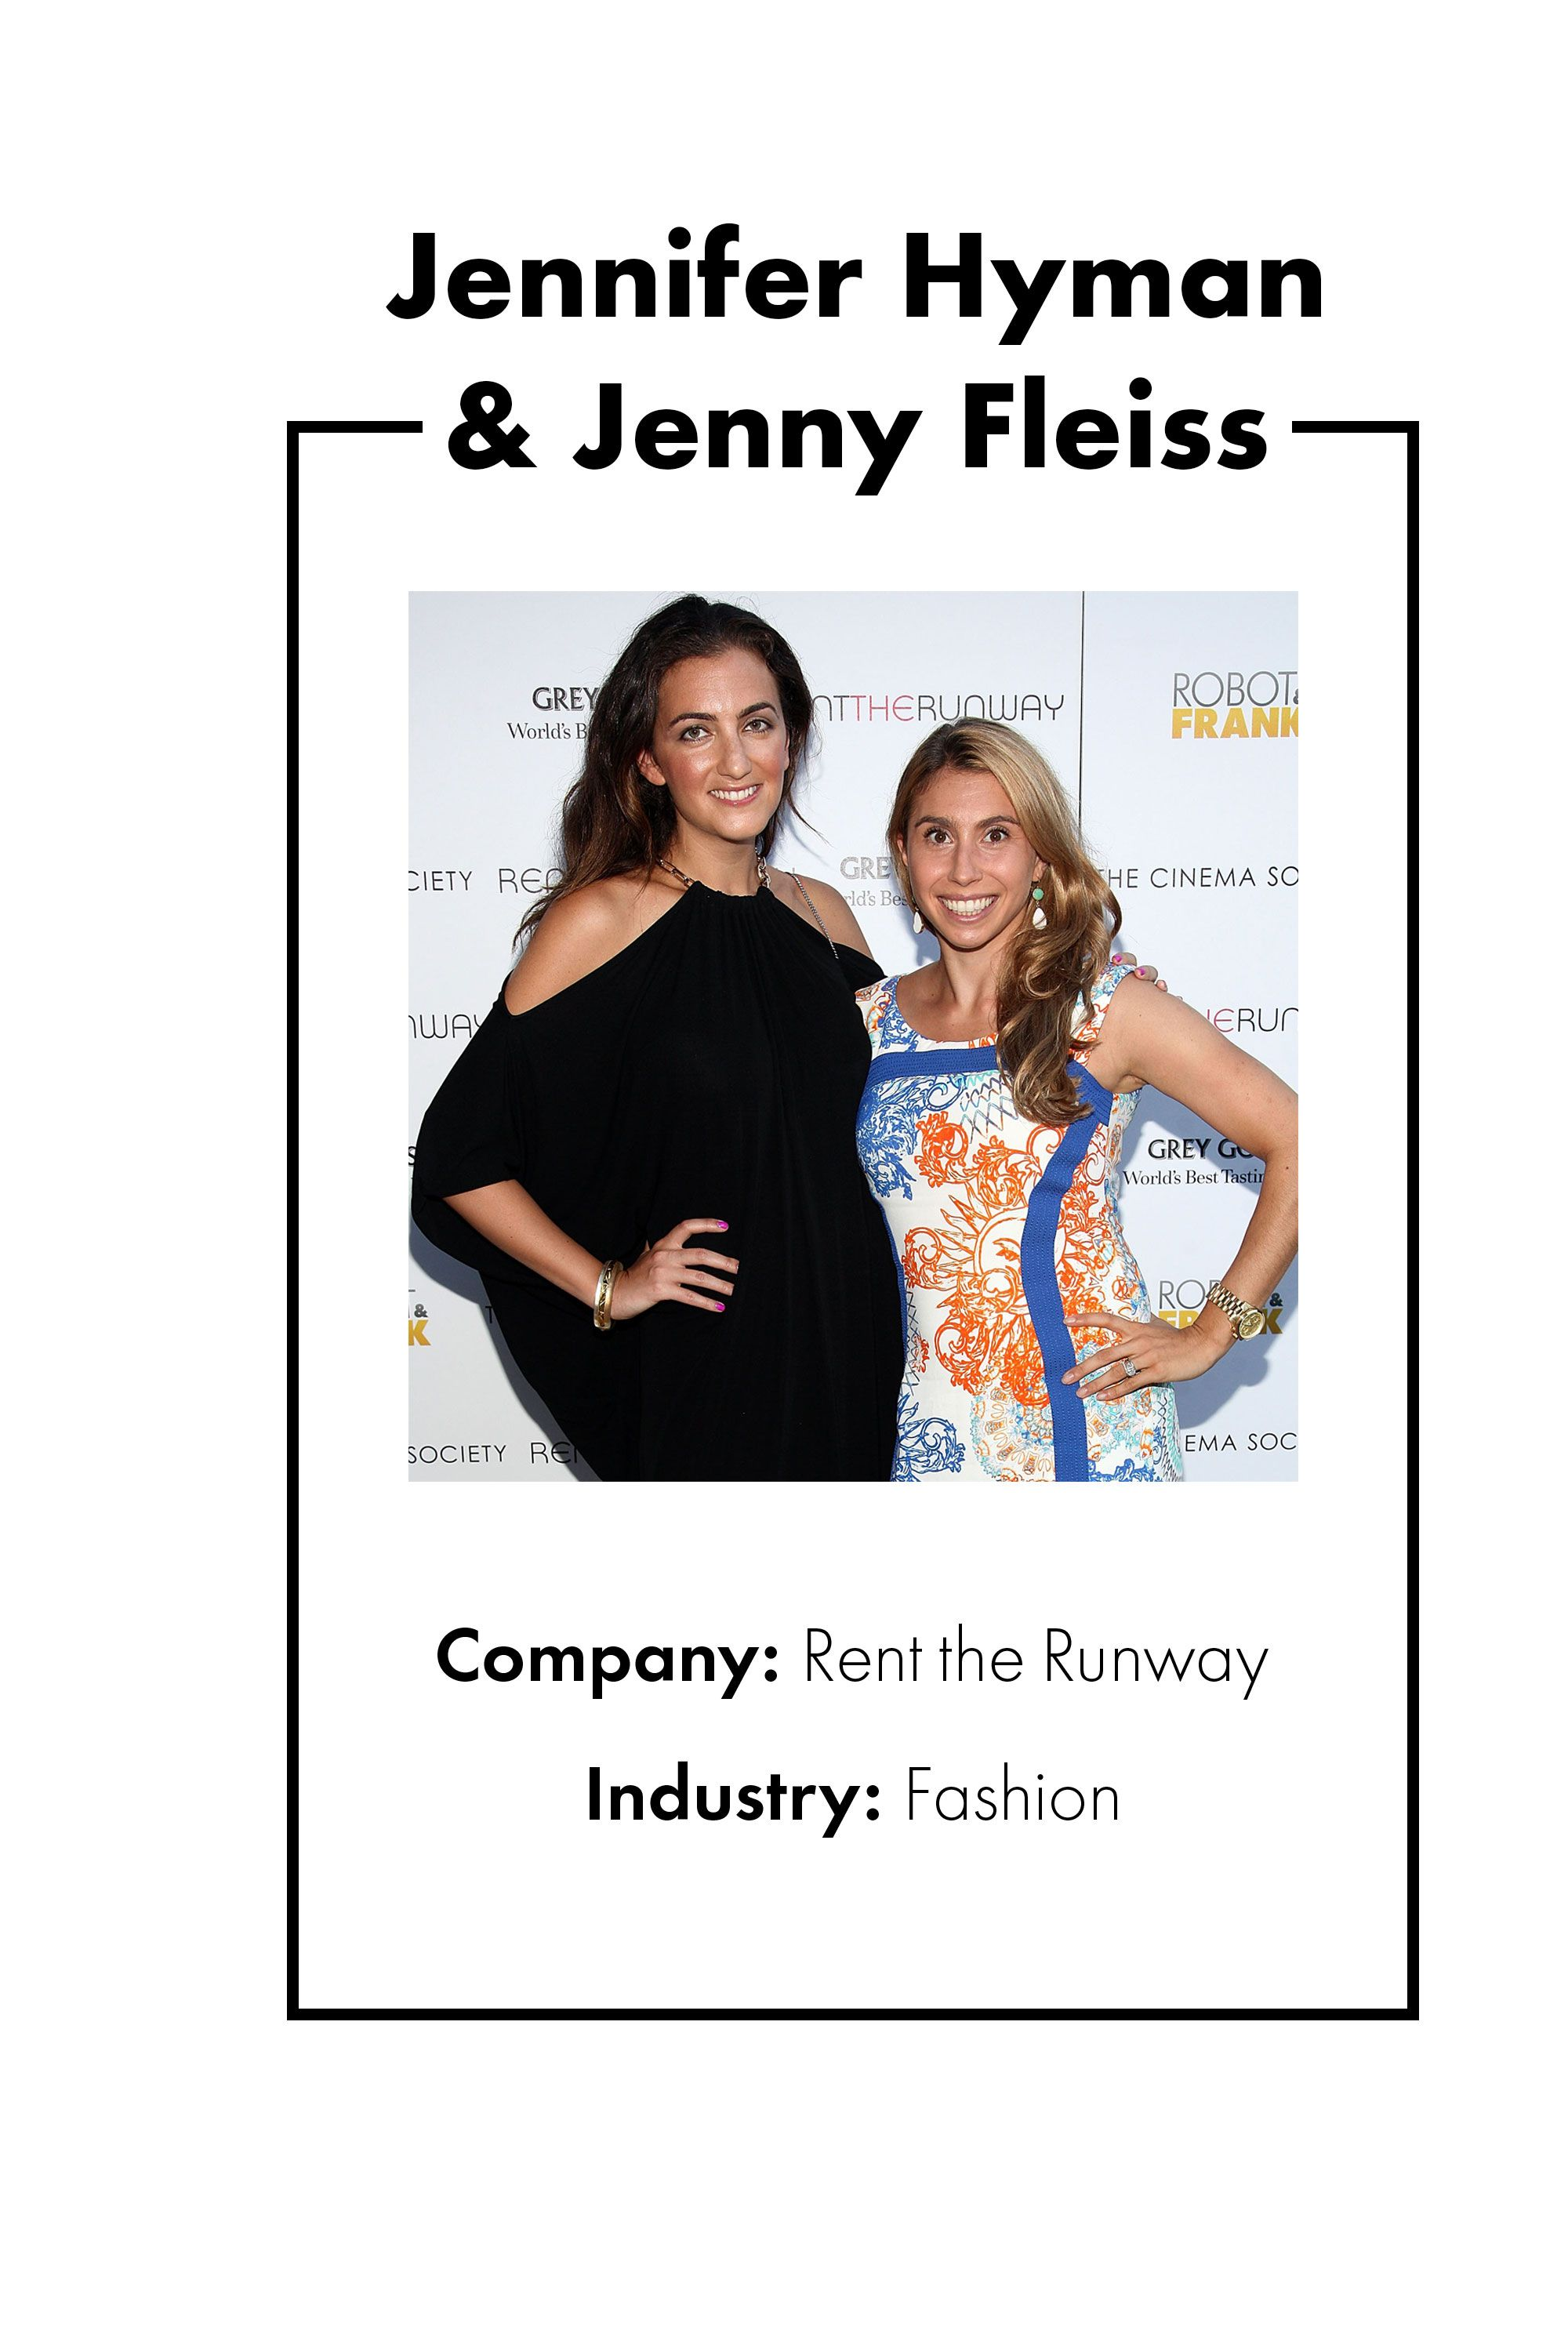 "<p>When Jennifer Hyman and Jenny Fleiss met at Harvard Business School, each woman had a very different career background and experience to her name, albeit similar first names. (Fleiss was working in finance and Hyman in sales and marketing.) In 2009, an idea struck for a new venture that would harness both of their expertise: What if there was something like Netflix for clothes, where women could borrow designer duds for special occasions? <a href=""https://www.renttherunway.com/"" target=""_blank"" data-tracking-id=""recirc-text-link"">Rent The Runway</a> was born, and Hyman and Fleiss left their jobs to pursue the company full-time. By 2014, they'd raised $116 million in venture capital funding and now count over four million women as members (and made <a href=""https://www.forbes.com/sites/clareoconnor/2016/06/15/rent-the-runway-unlimited-women-founders-revenues/#699ebe9072e1"" target=""_blank"" data-tracking-id=""recirc-text-link"">$100 million in revenue</a> last year). And, chances are, you're one of them.</p>"